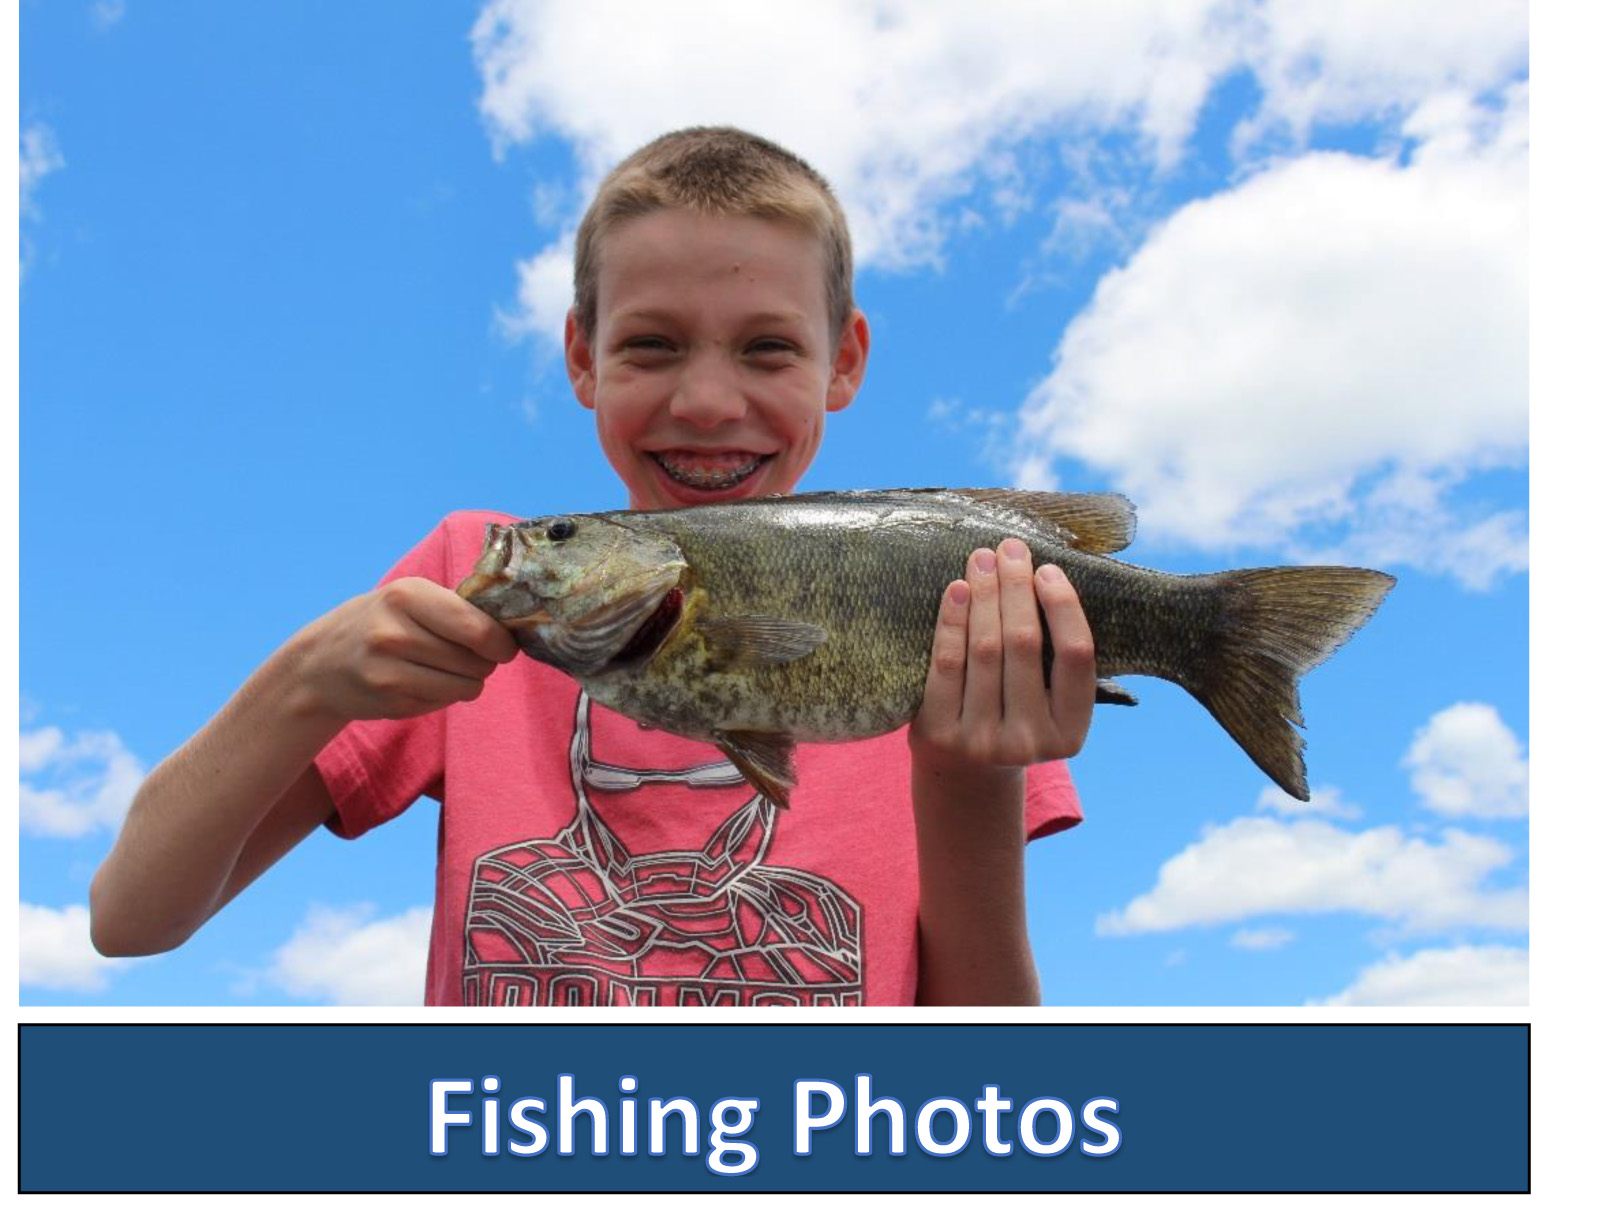 fishing photos